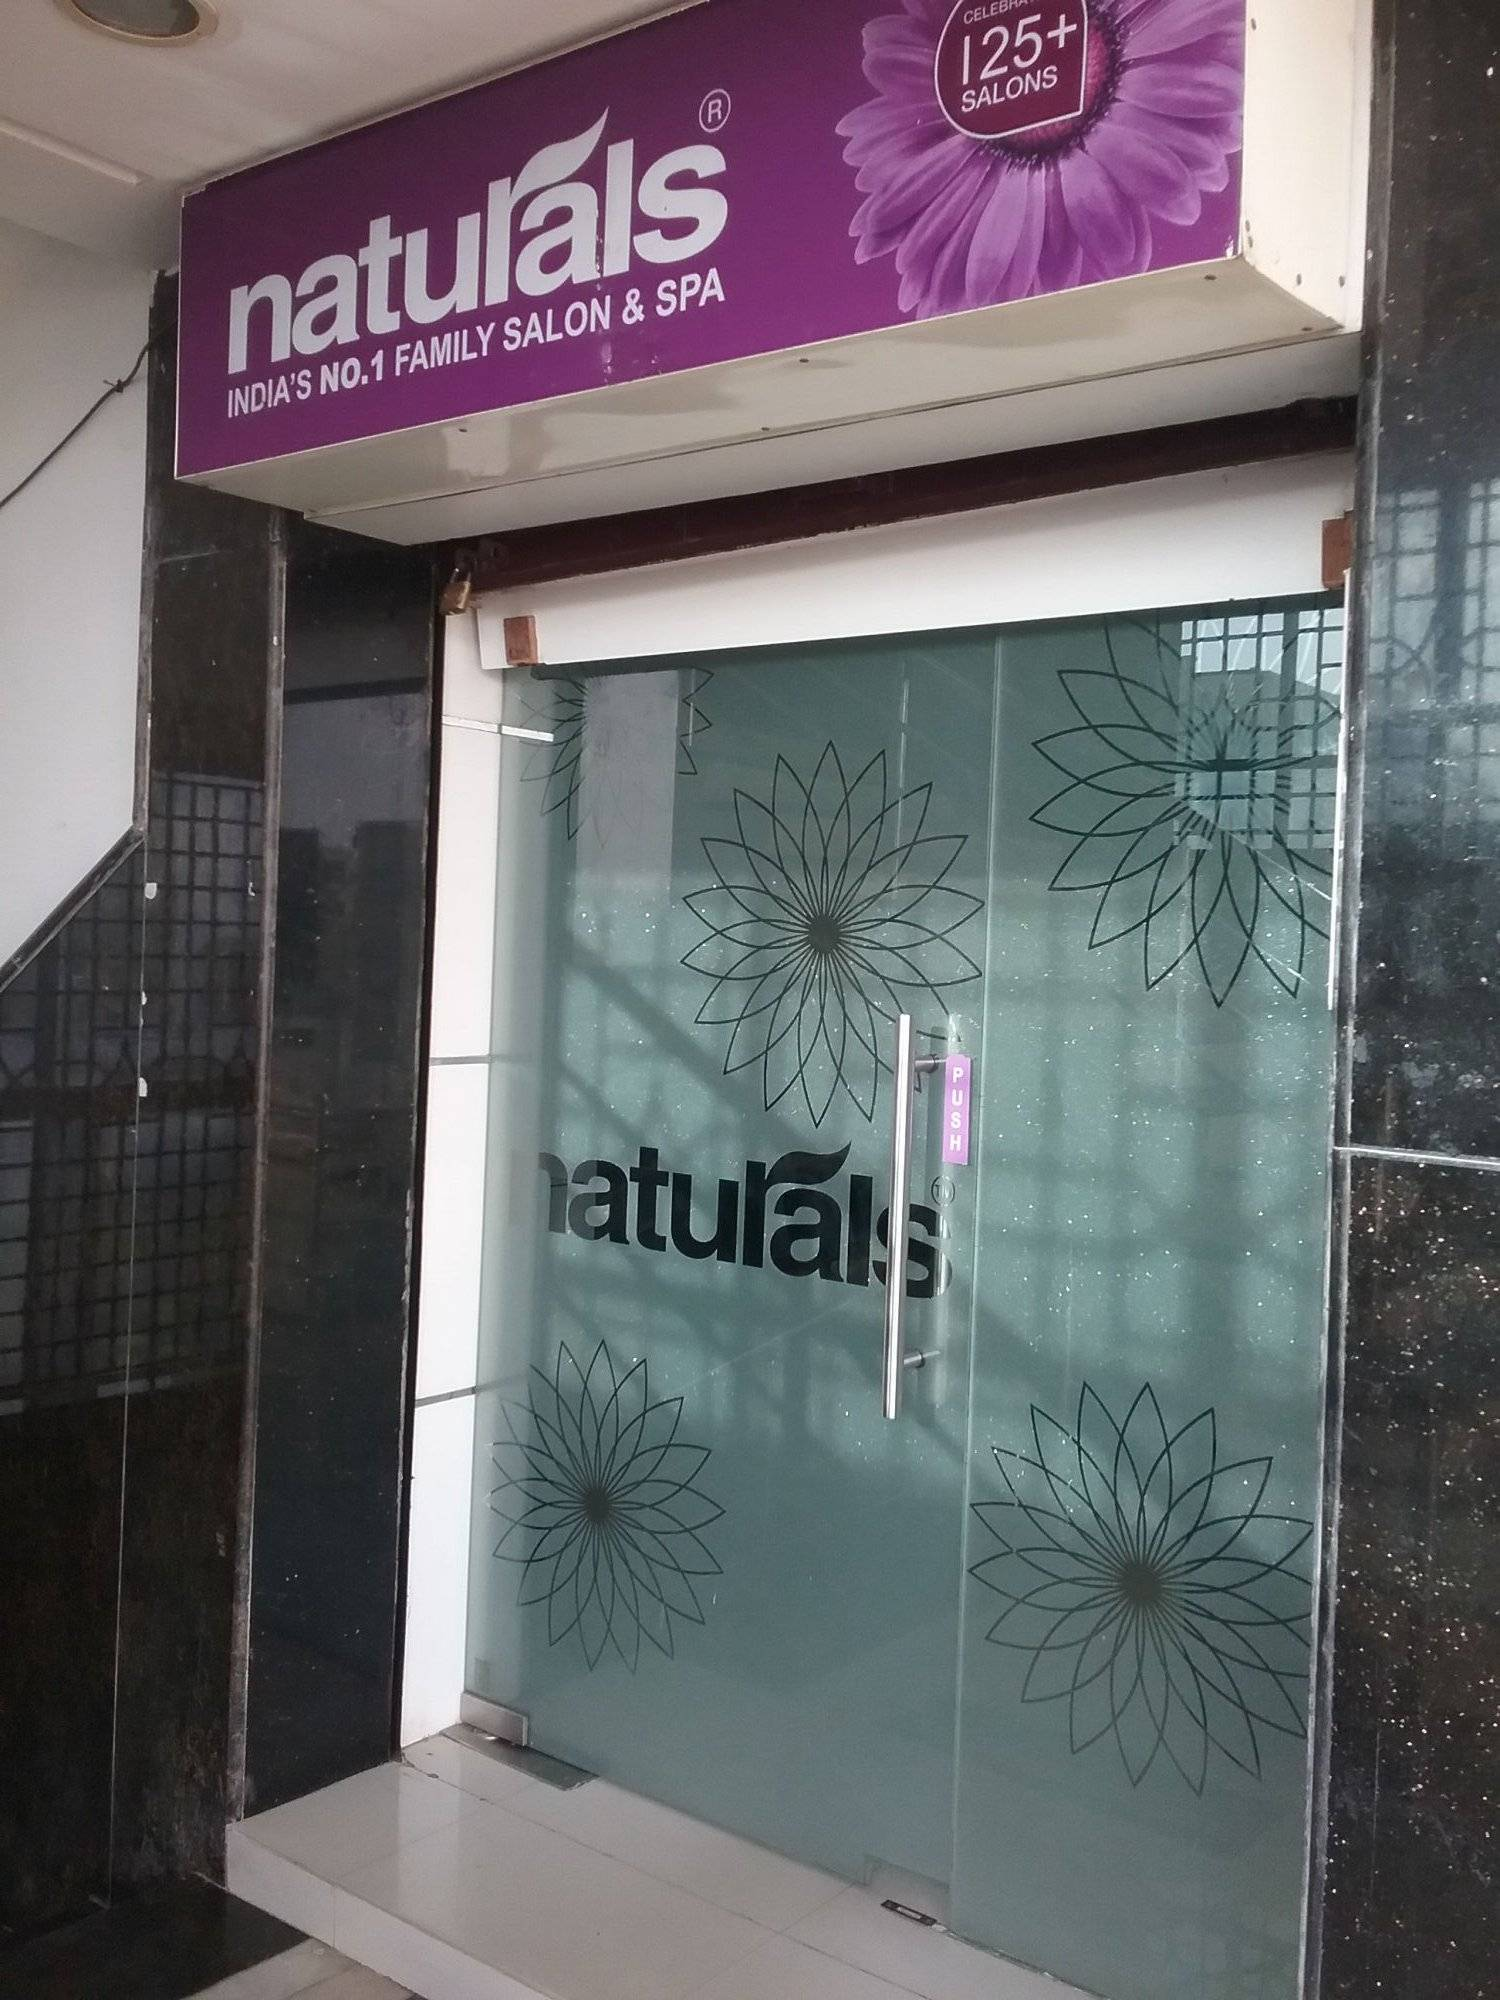 Naturals Unisex Salon Spa Namakkal Ho Massage Centres For Men In Namakkal Justdial